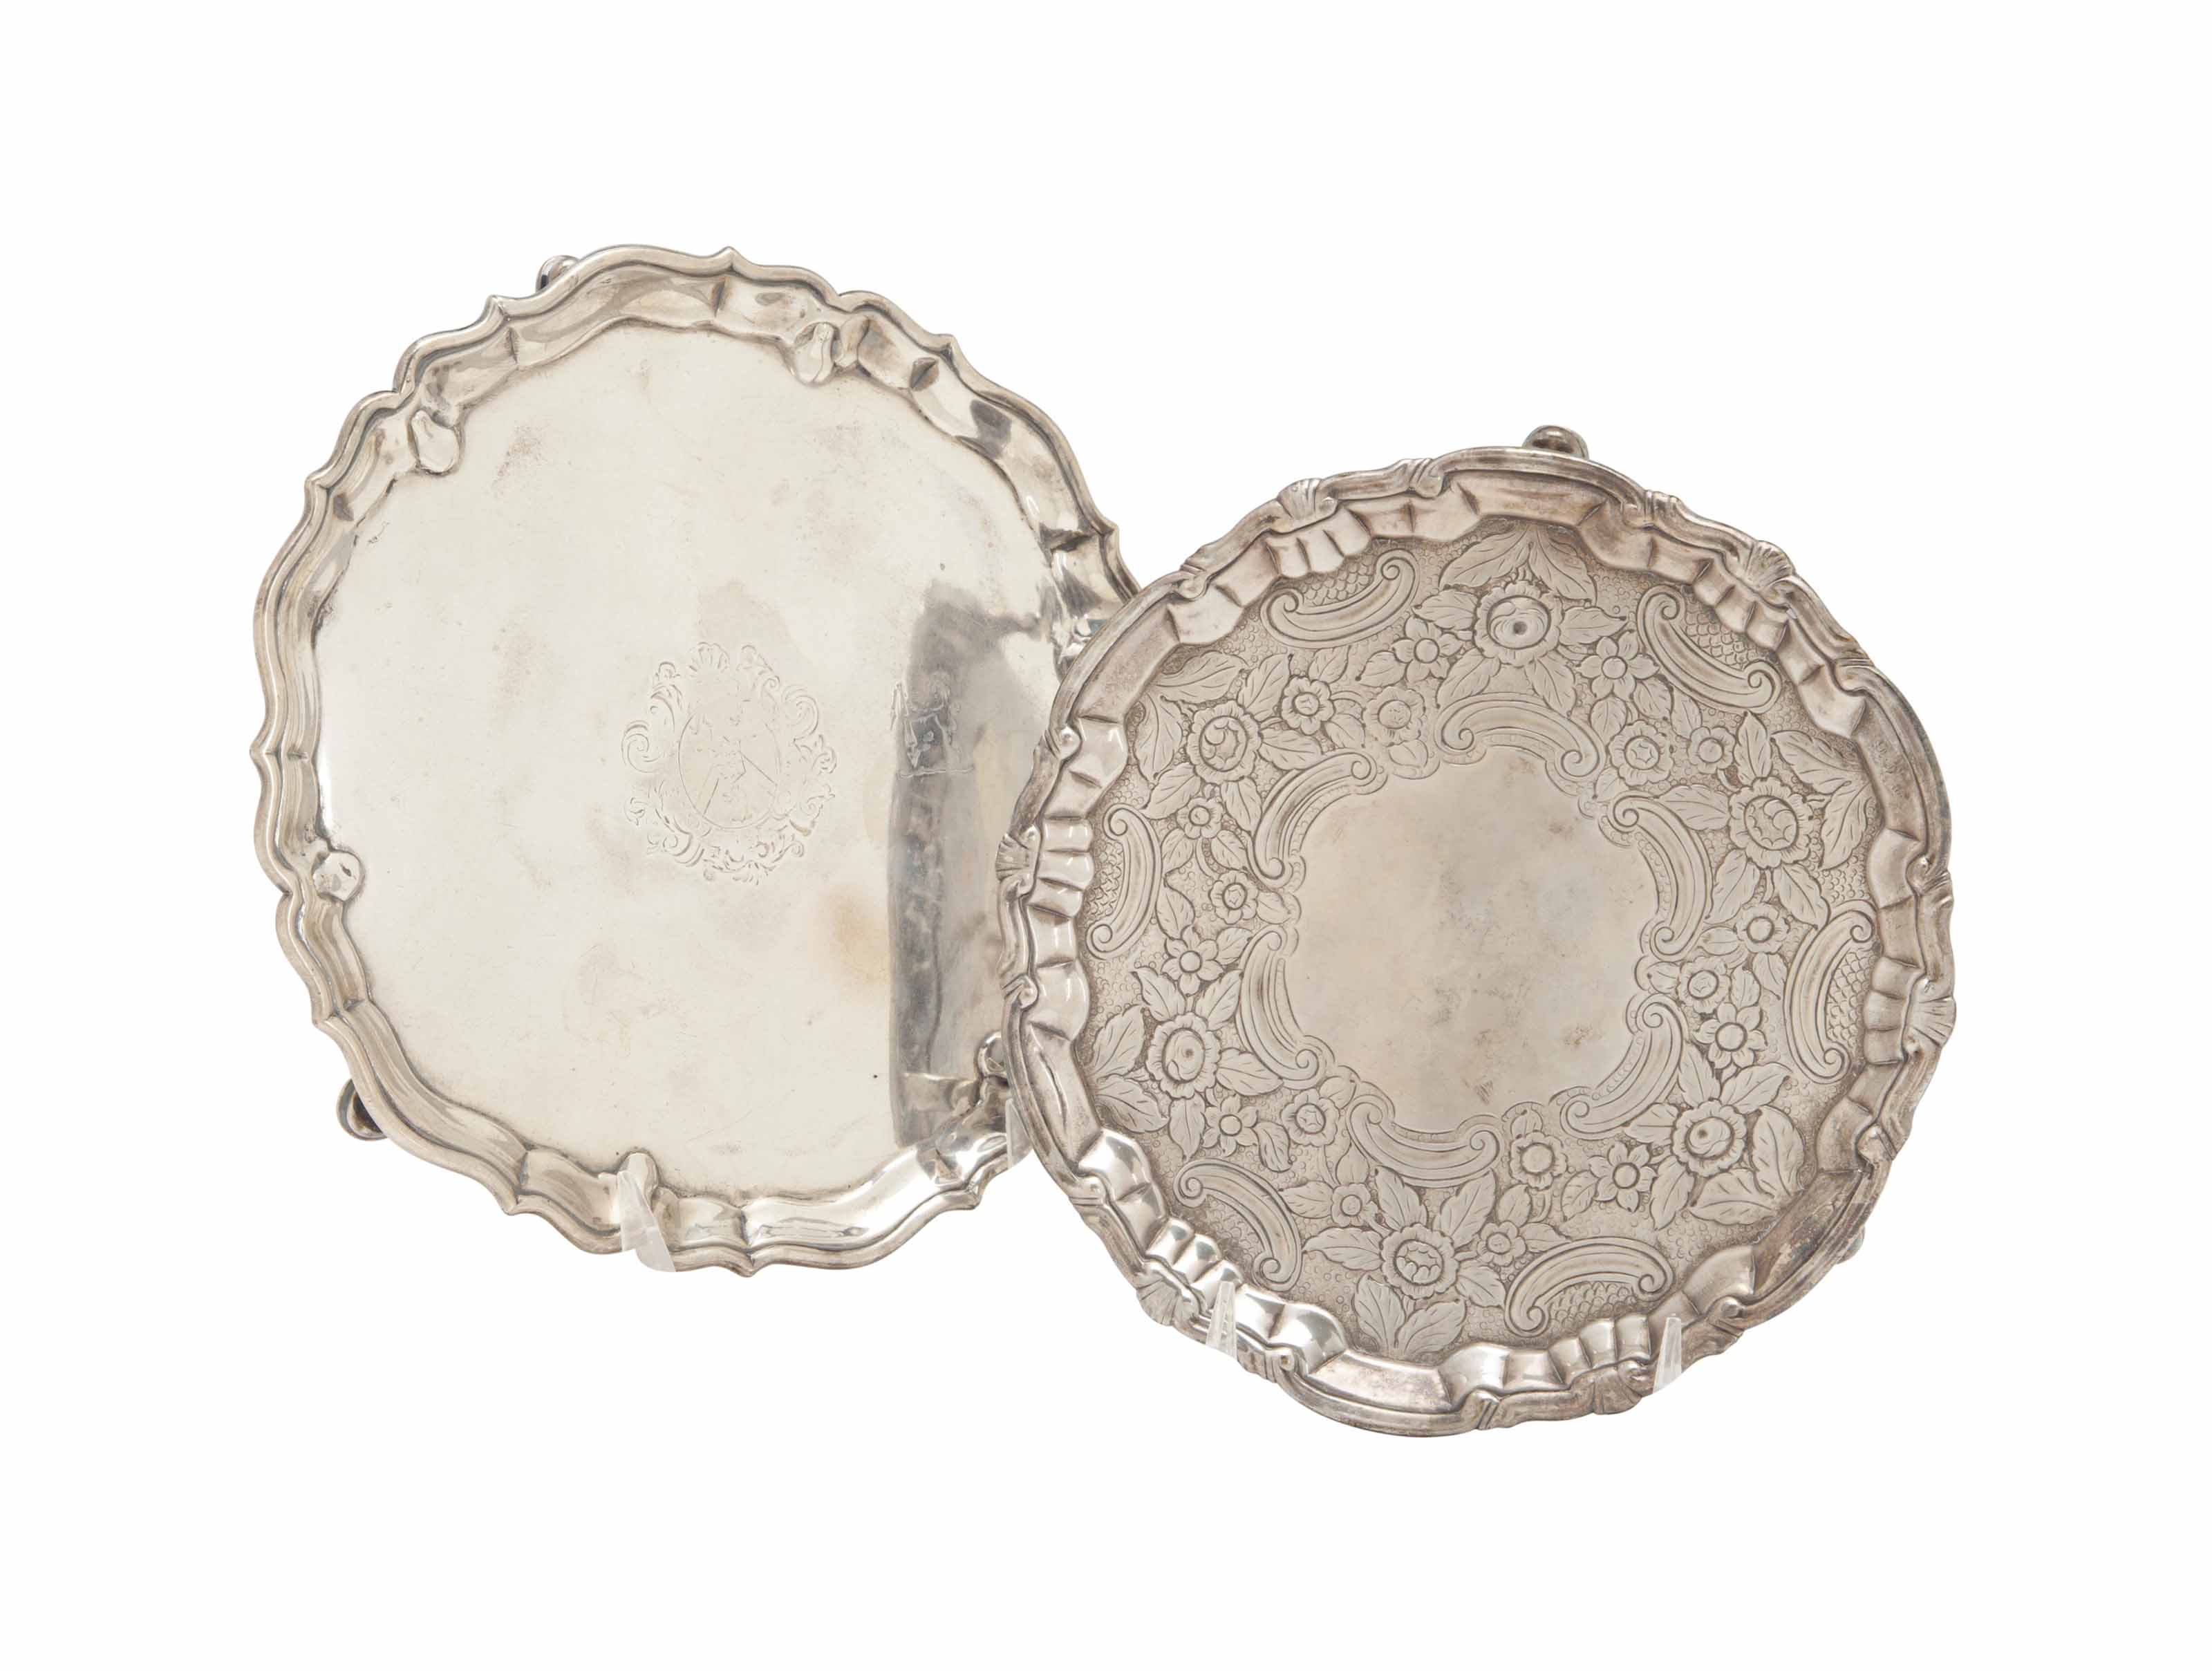 A GEORGE II SILVER SLAVER, AND